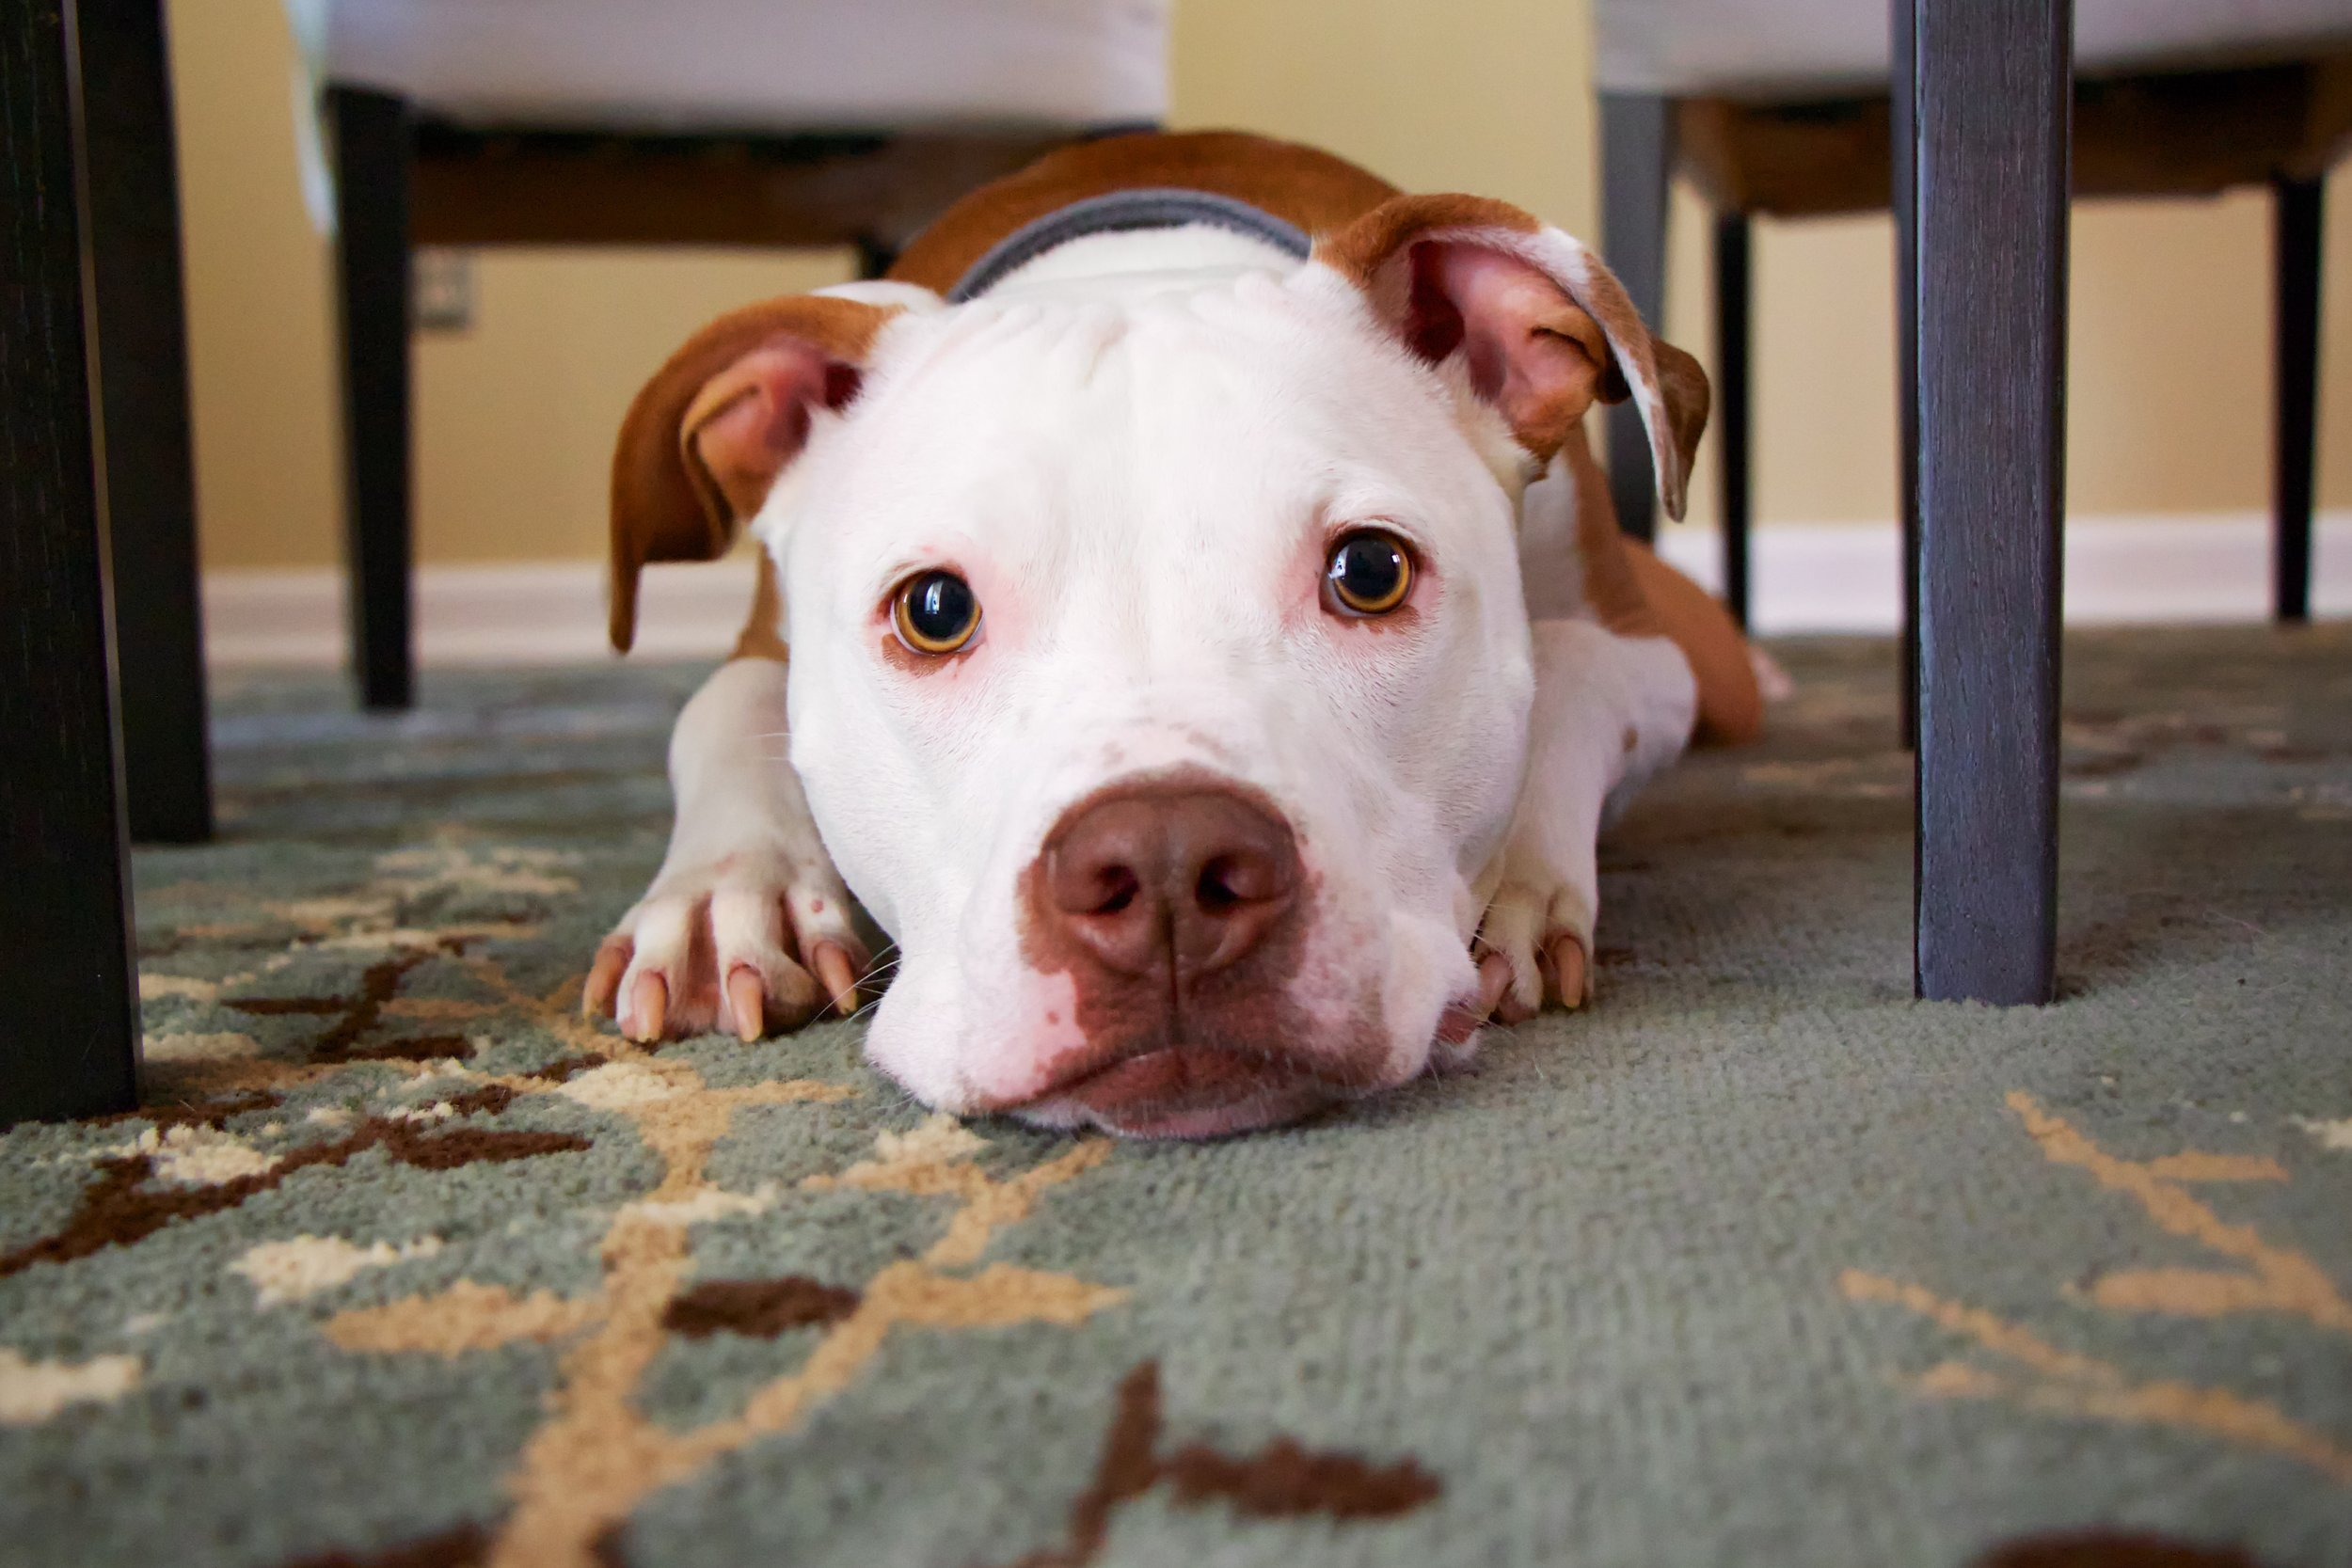 carpet-cleaning-pet-stains-columbia-heights.jpg